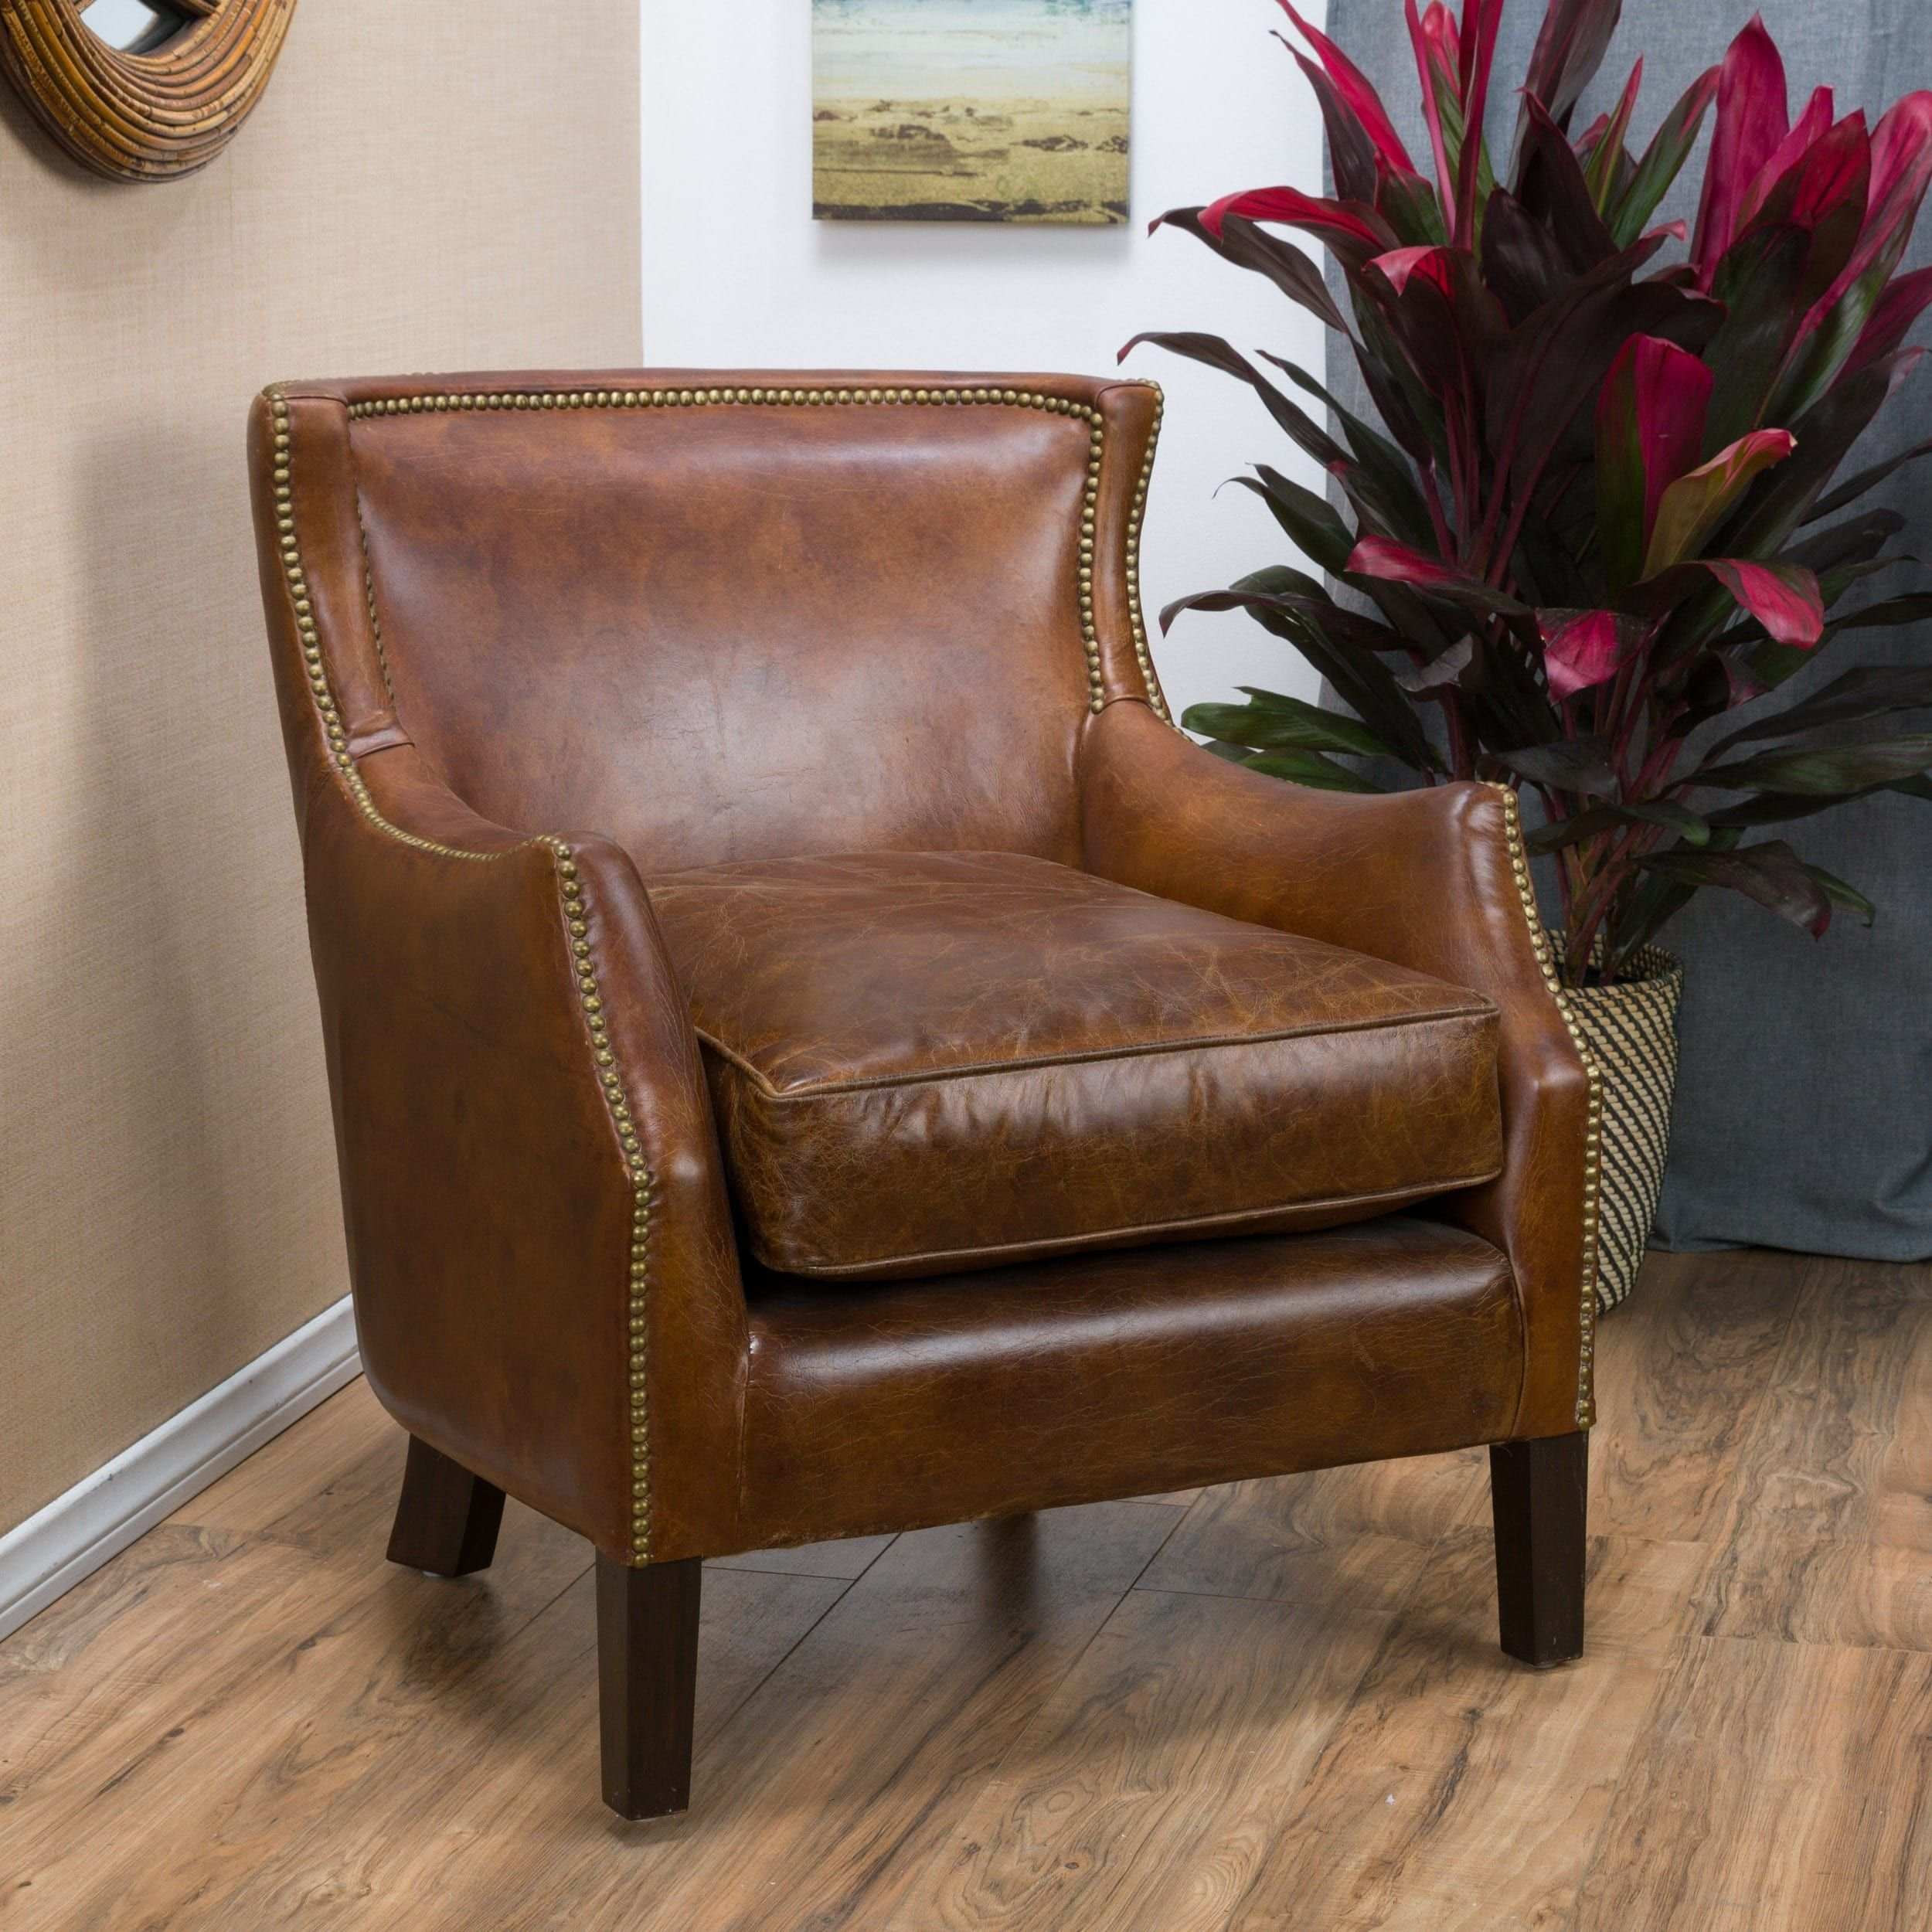 Tillo Top Grain Vintage Brown Leather Club Chair By Christopher Knight Home  | Overstock.com